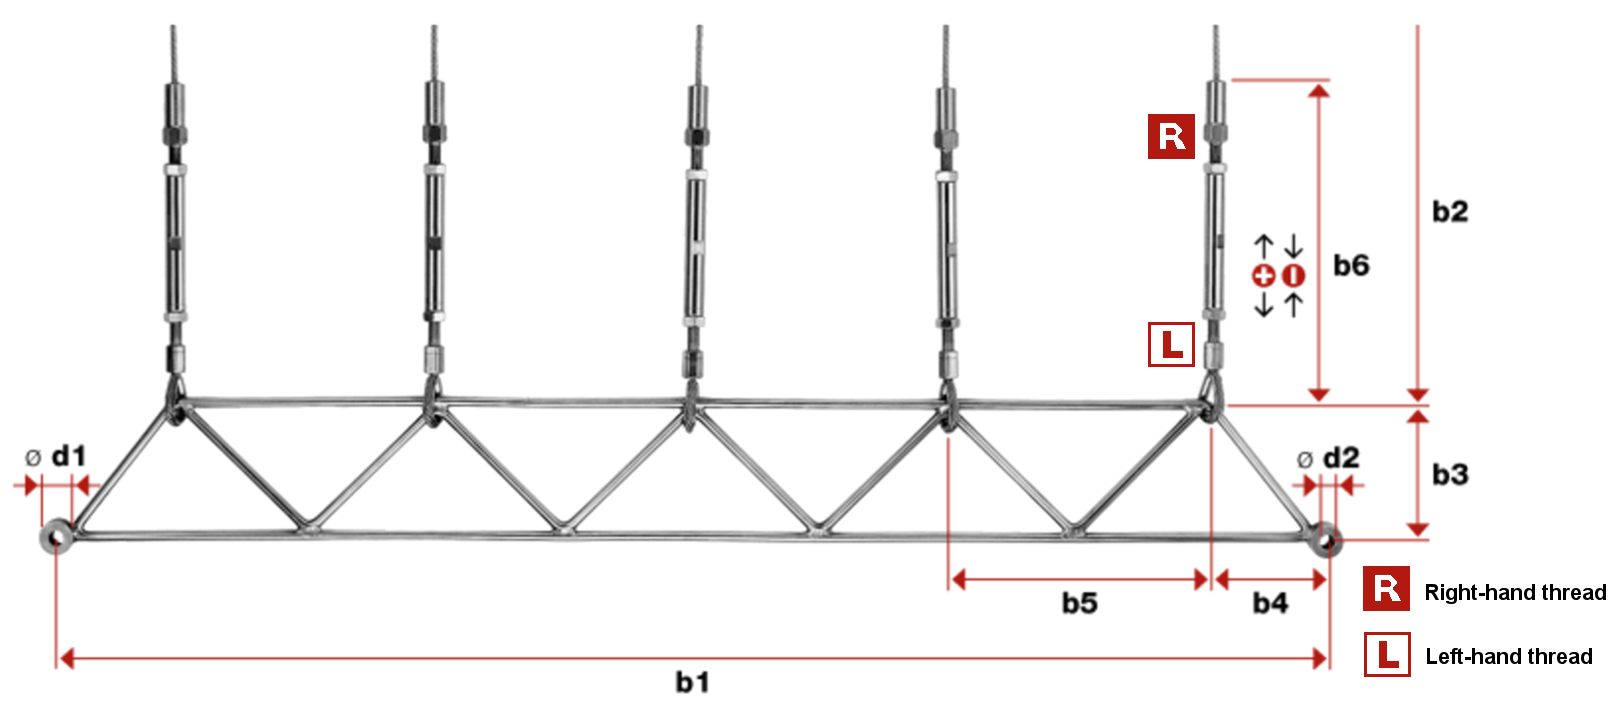 Greenguide Trellis Works with Swaged Loops Kit 1 (With 3 Vertical Wires) bottom frame measurements